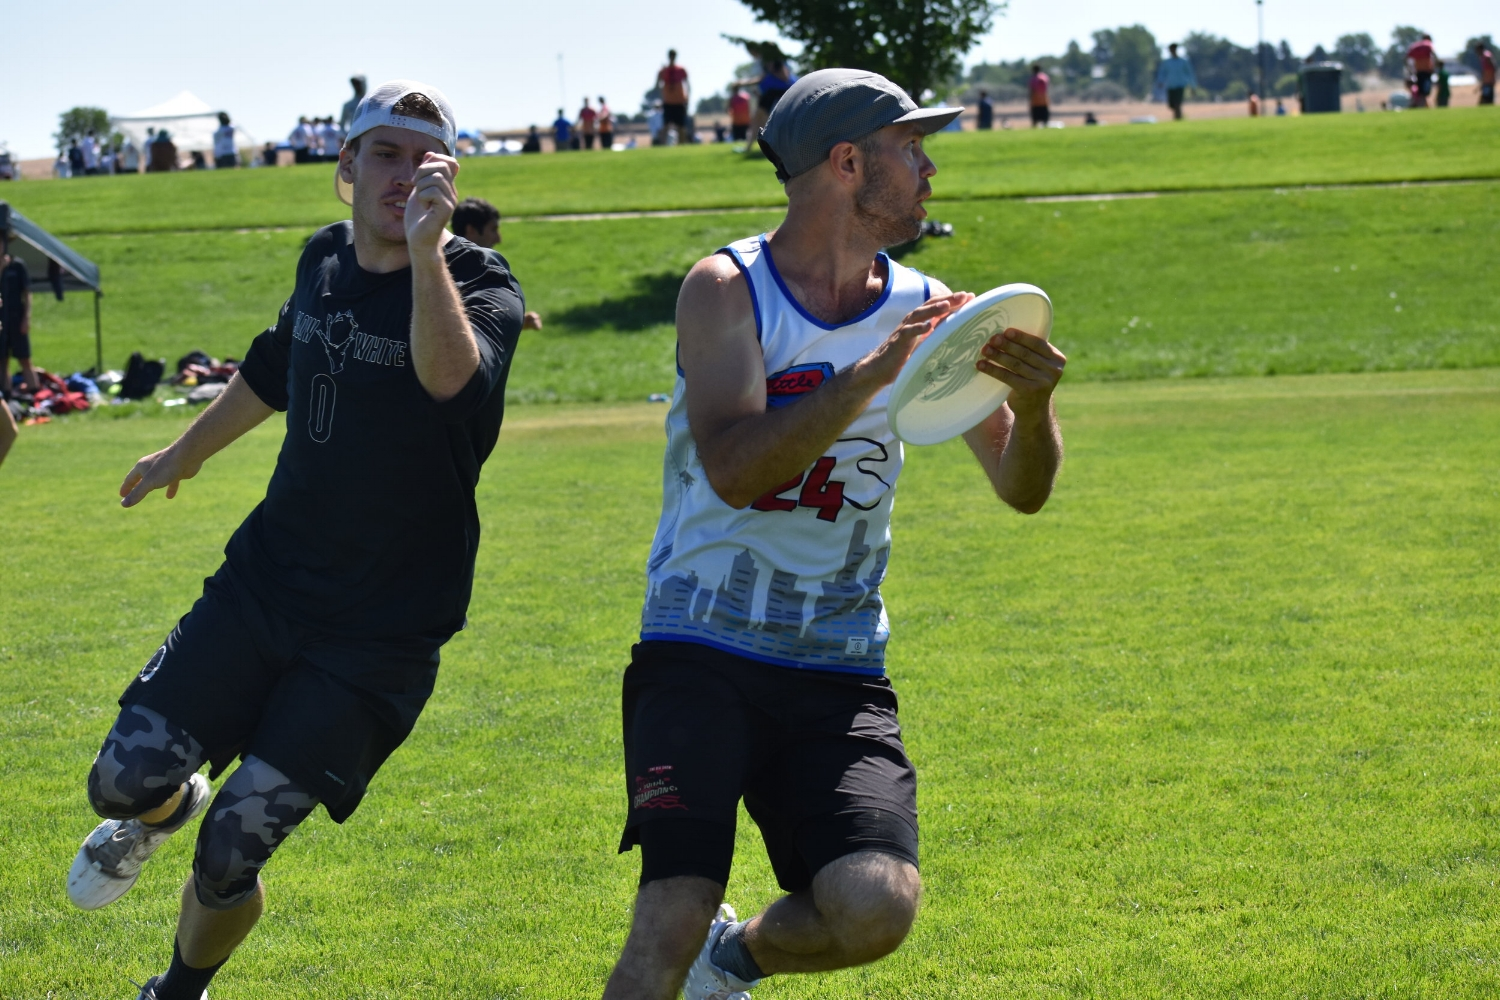 Alex Duffel of Seattle Mixtape catches the disc in front of Boston Slow White's Walker Hatchett. (Laurel Oldershaw)